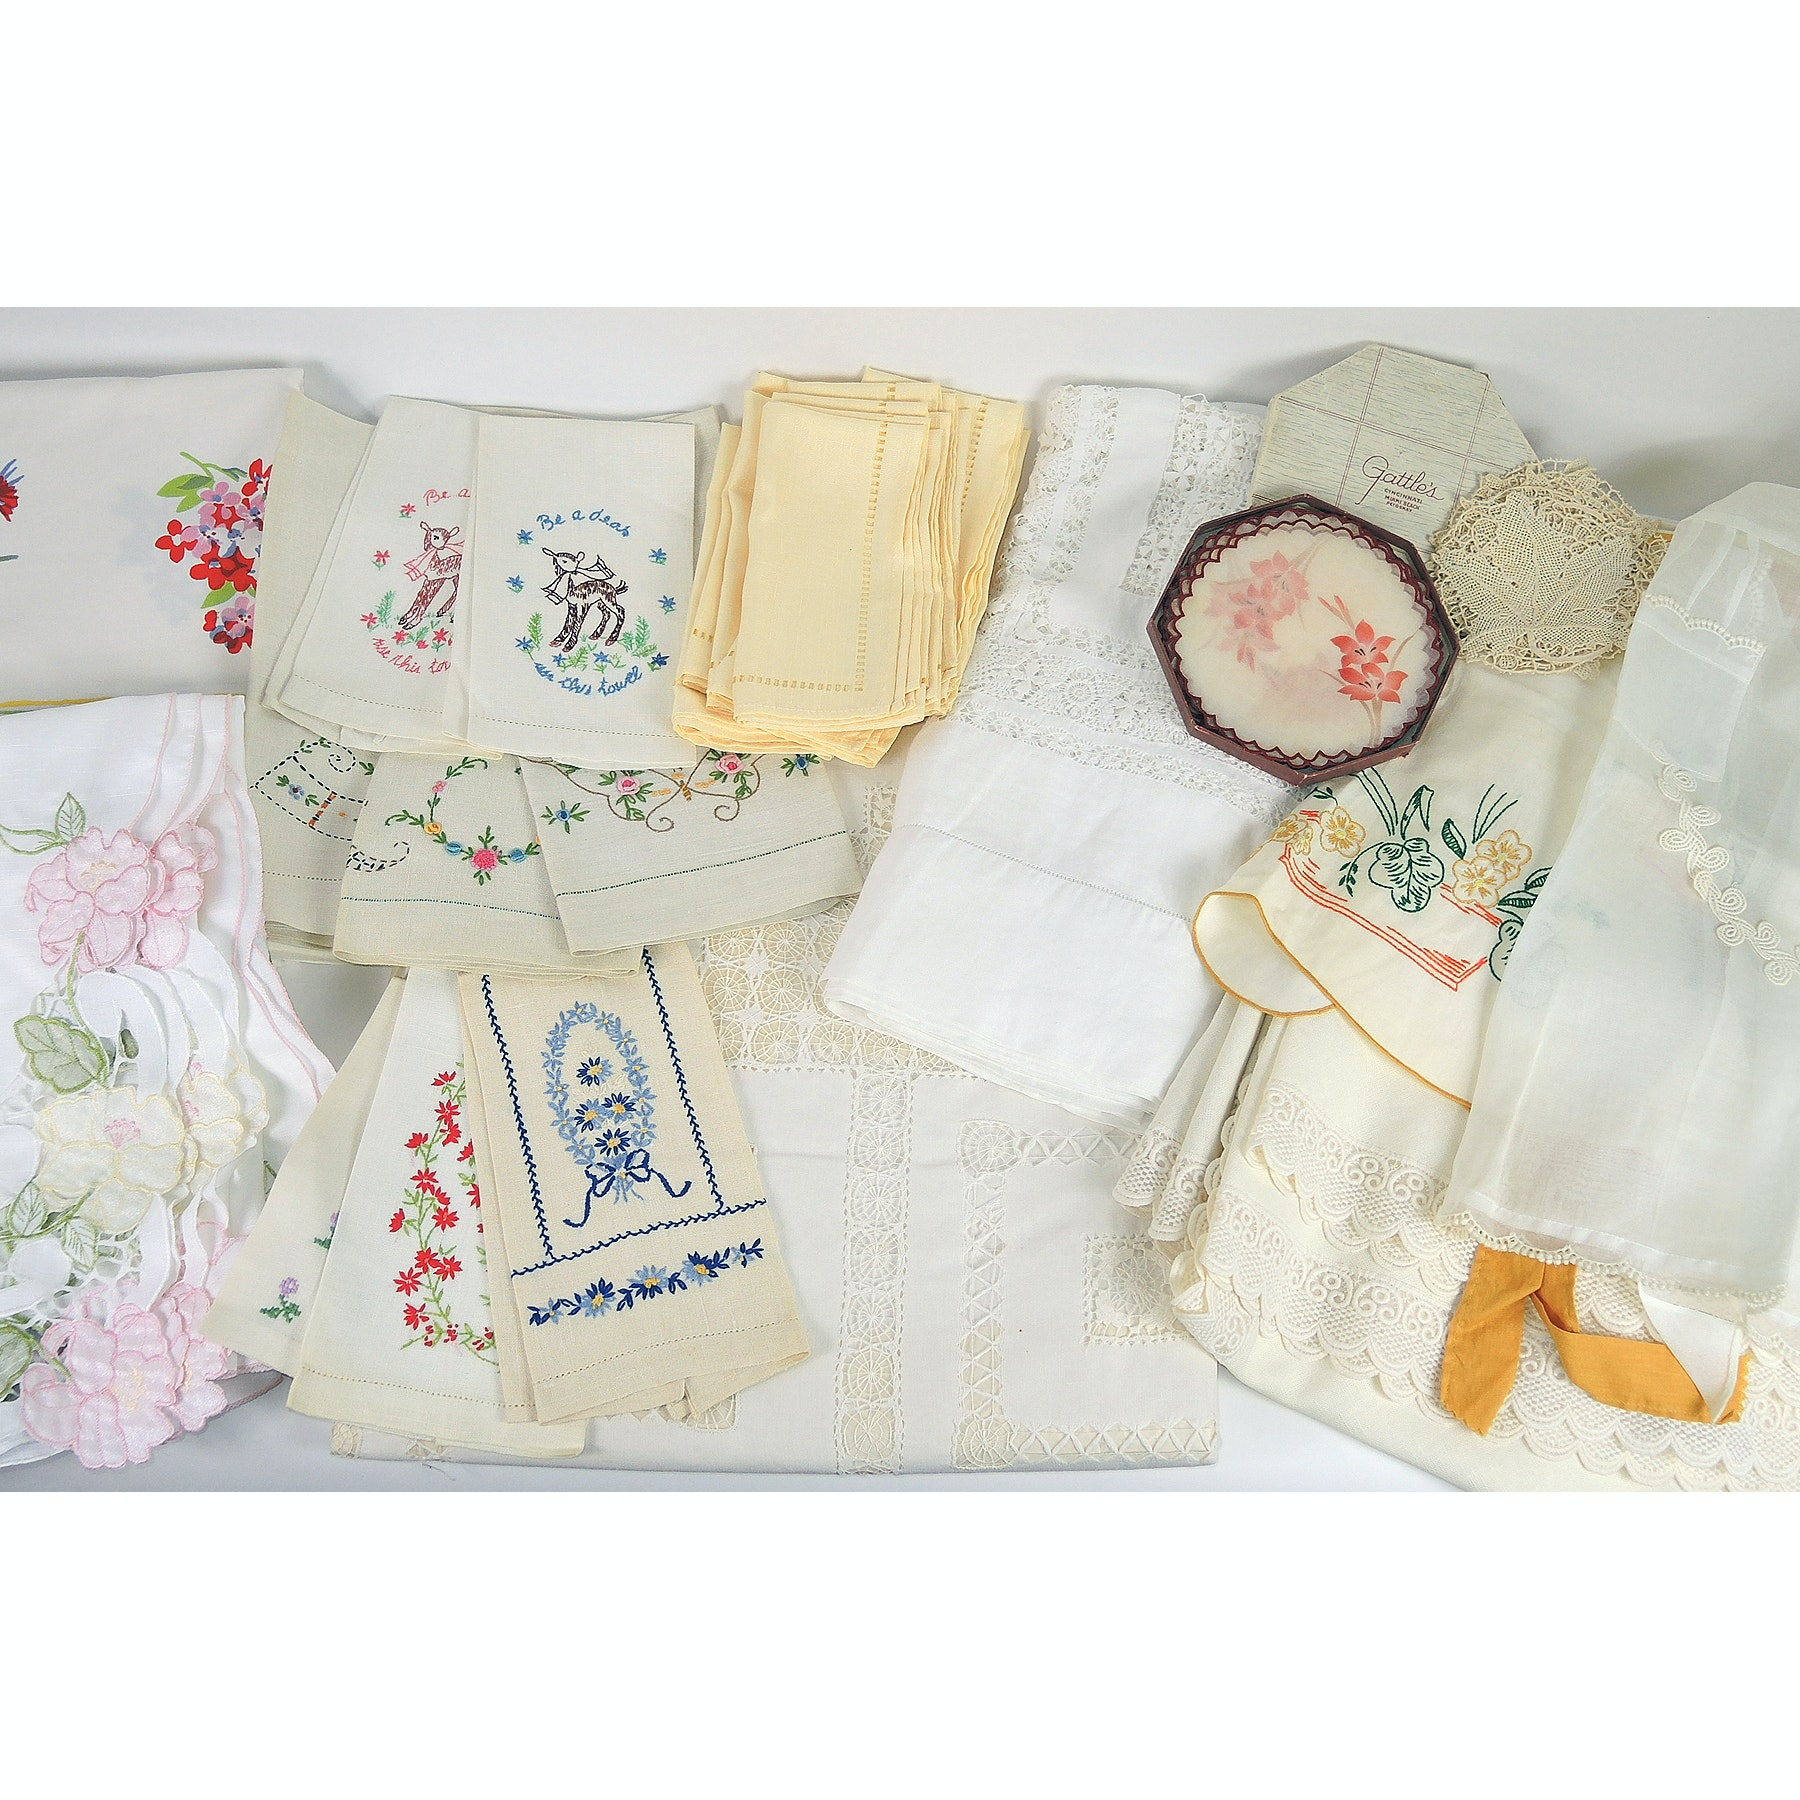 Lace, Cutwork and Embroidered Table Linens with Aprons